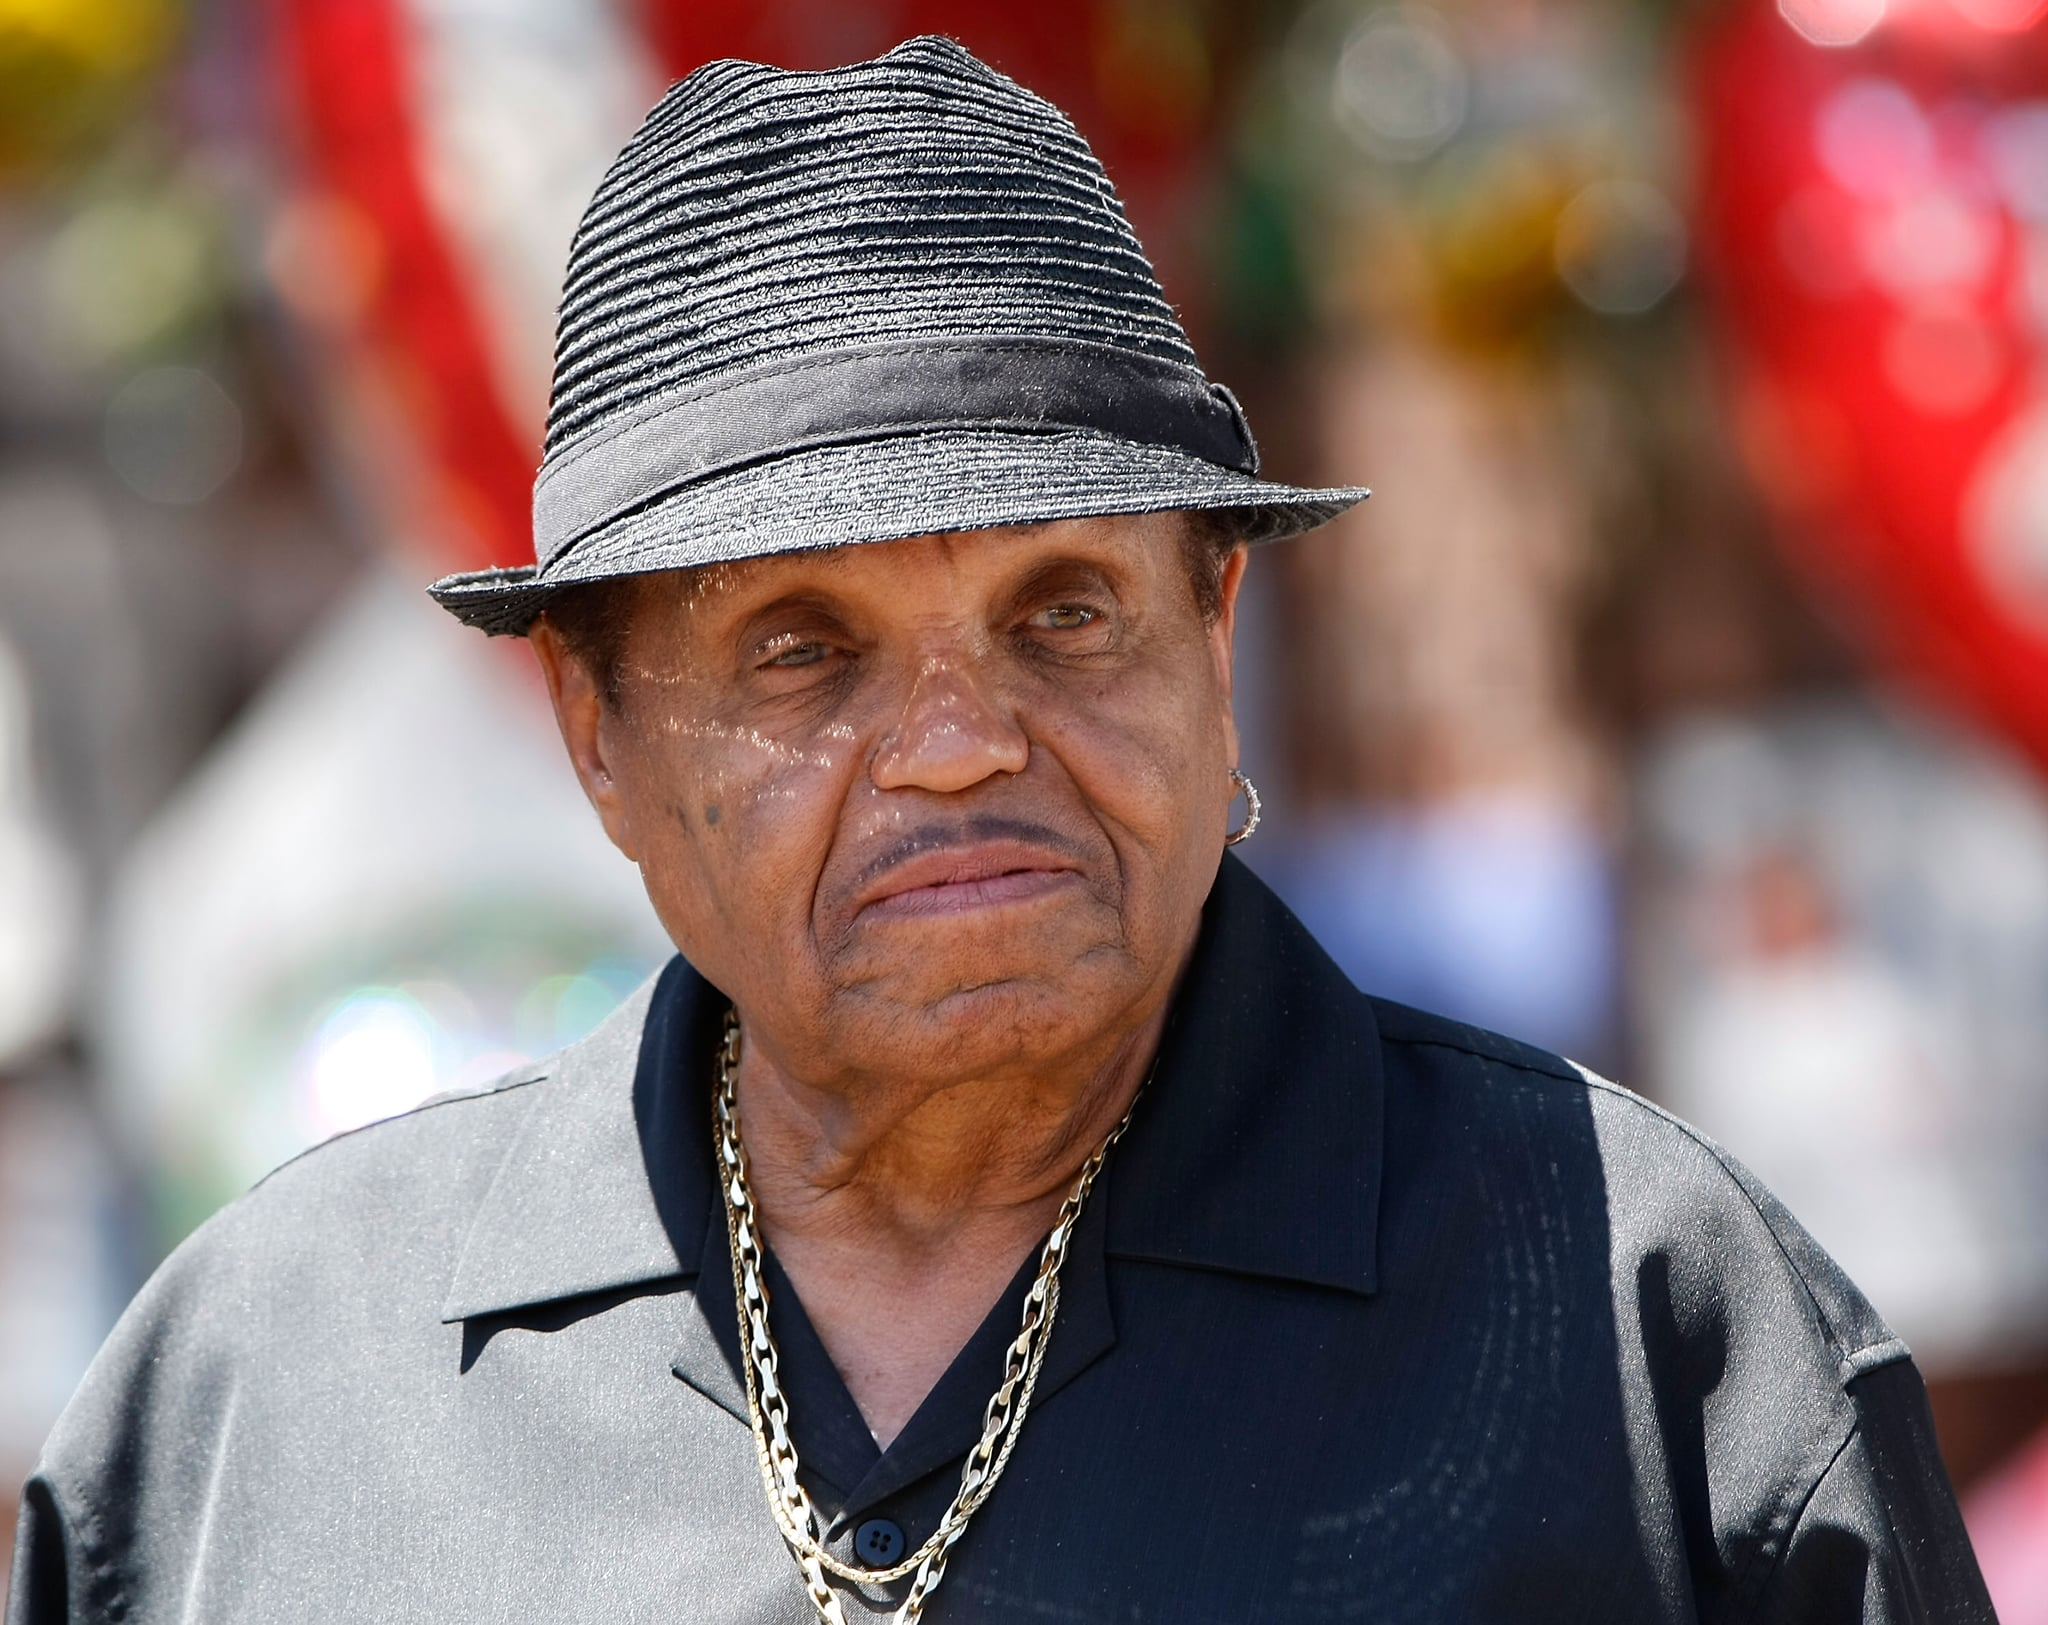 ENCINO, CA - JUNE 29:  Joe Jackson speaks with the media in front of the Jackson compound on June 29, 2009 in Encino, California. Michael Jackson, 50, the iconic pop star, died after going into cardiac arrest at around midday on June 25, 2009 local time in Los Angeles, California.  (Photo by Michael Buckner/Getty Images)